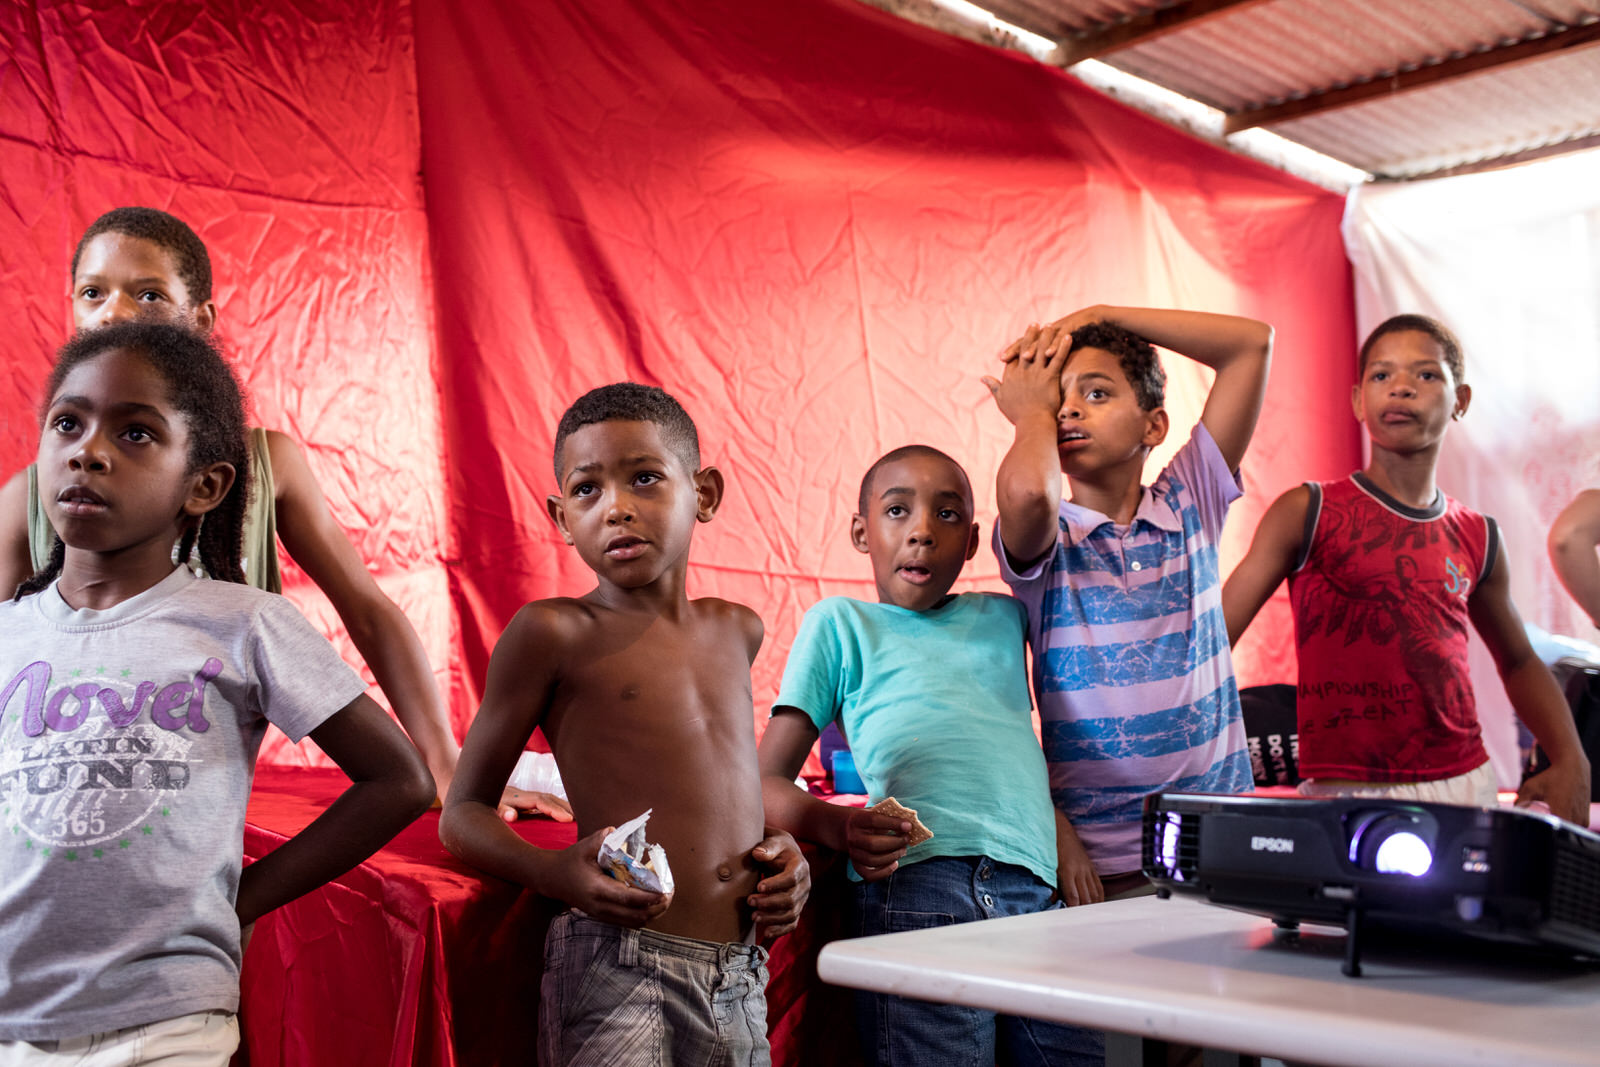 Children watching music videos projected on the walls of the community centre in Ocupação Guerreira Maria.